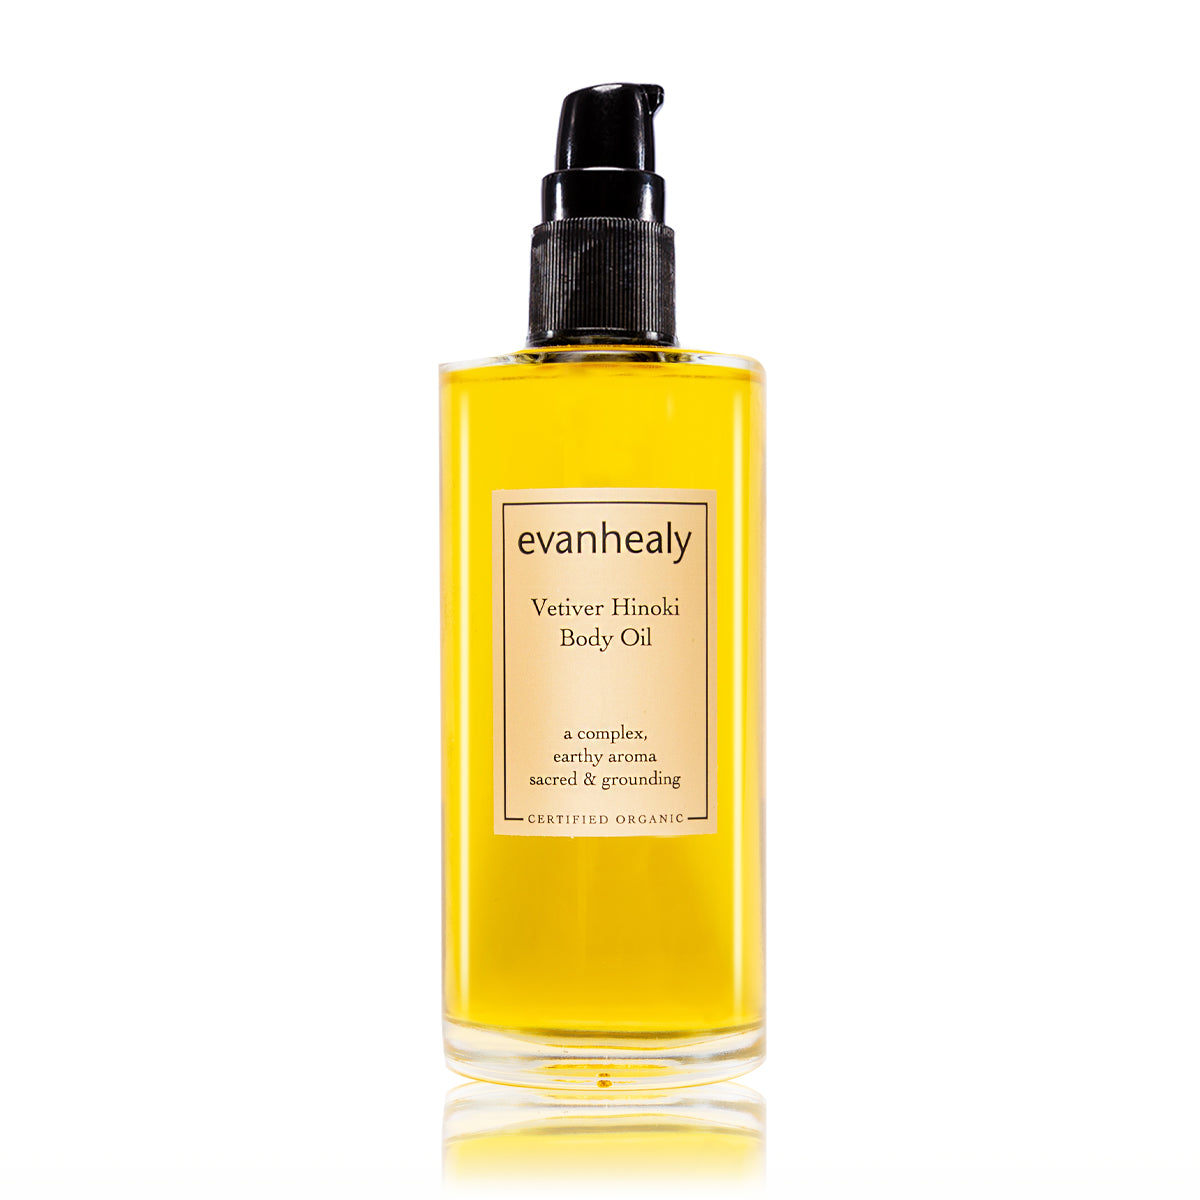 Vetiver Hinoki Body Oil